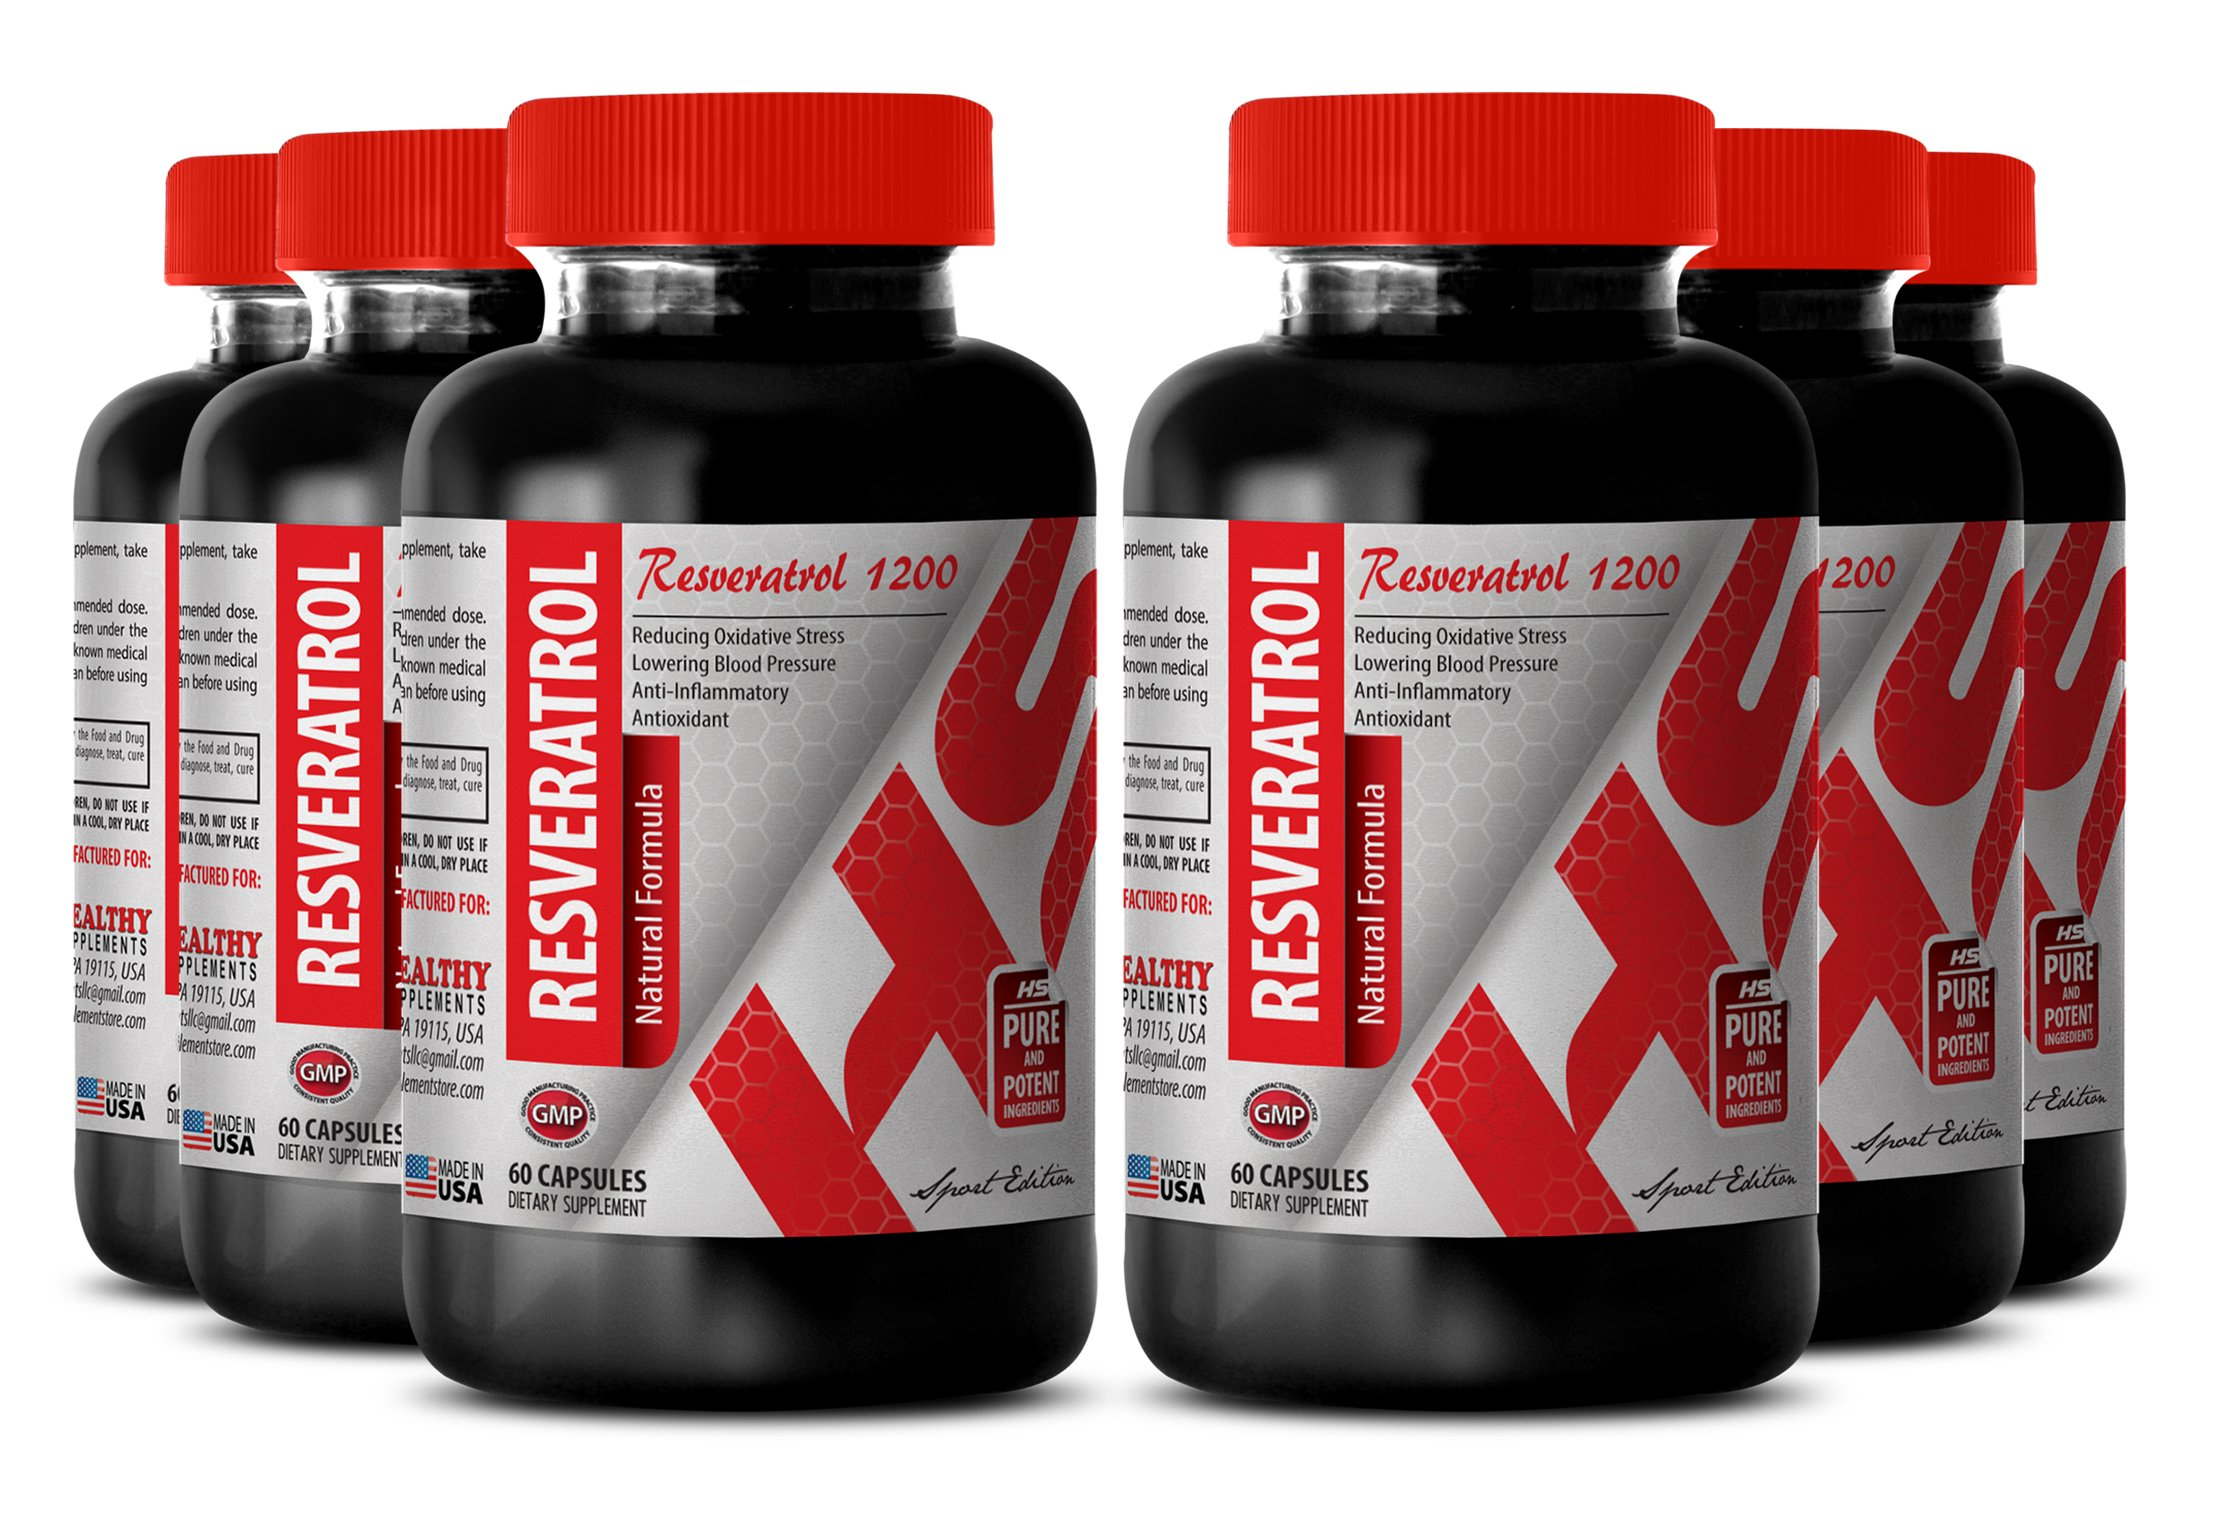 Red wine resveratrol - RESVERATROL RED WINE EXTRACT 1200 MG - boost endurance (6 Bottles) by Healthy Supplements LLC